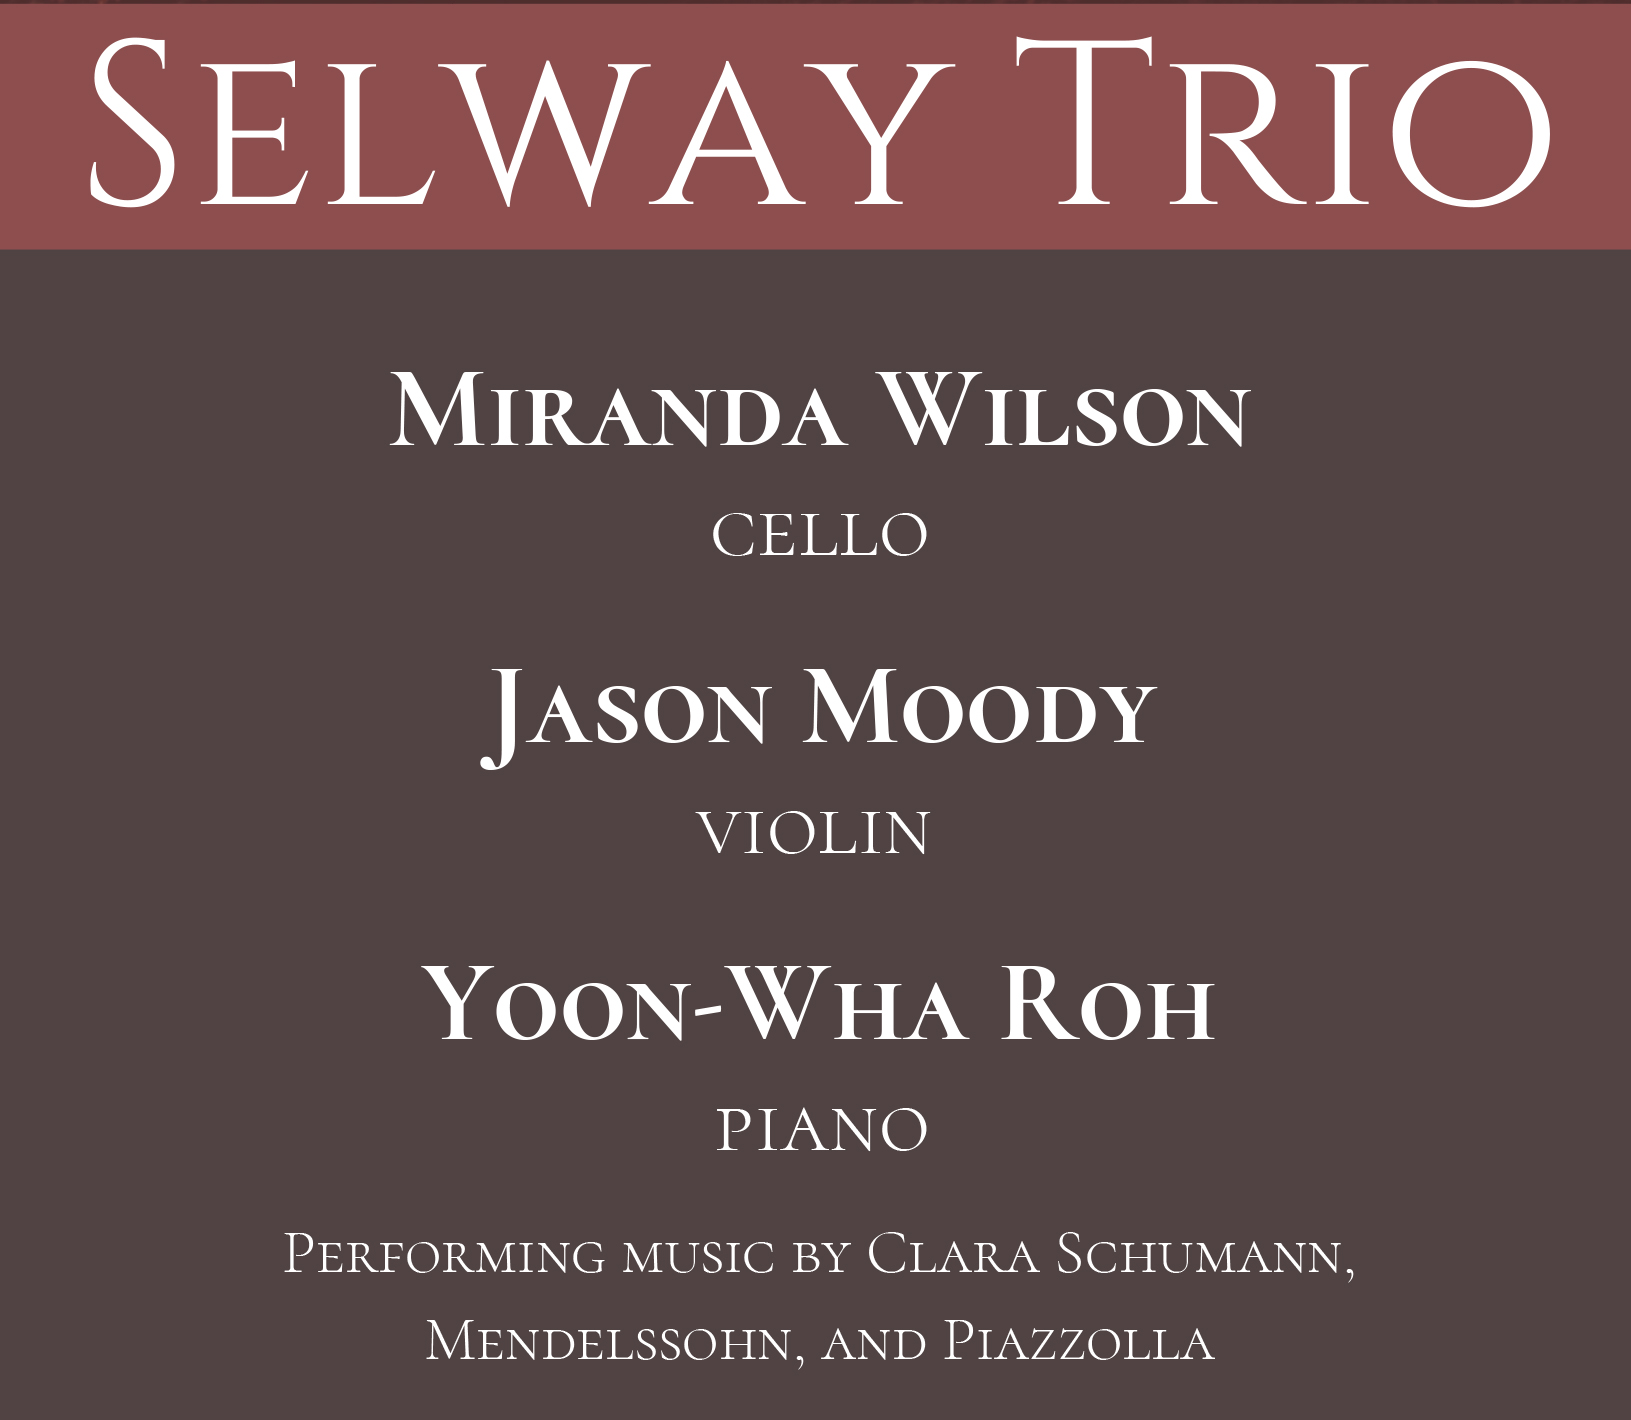 selway trio - JUNE 13TH, 2019